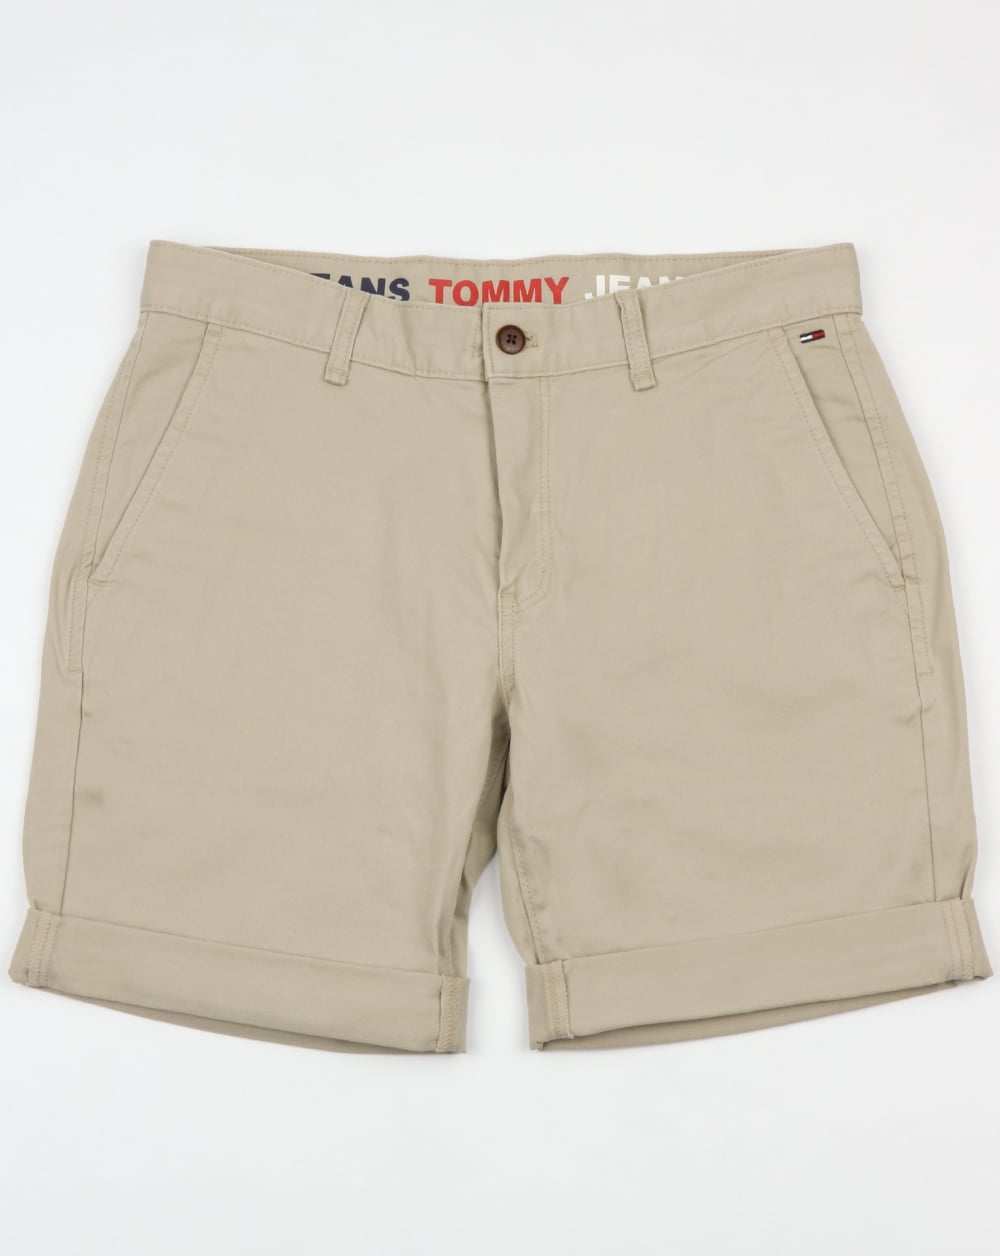 7aa20fe7 Tommy Hilfiger Freddy Shorts Light Stone,chino,cotton,smart,mens